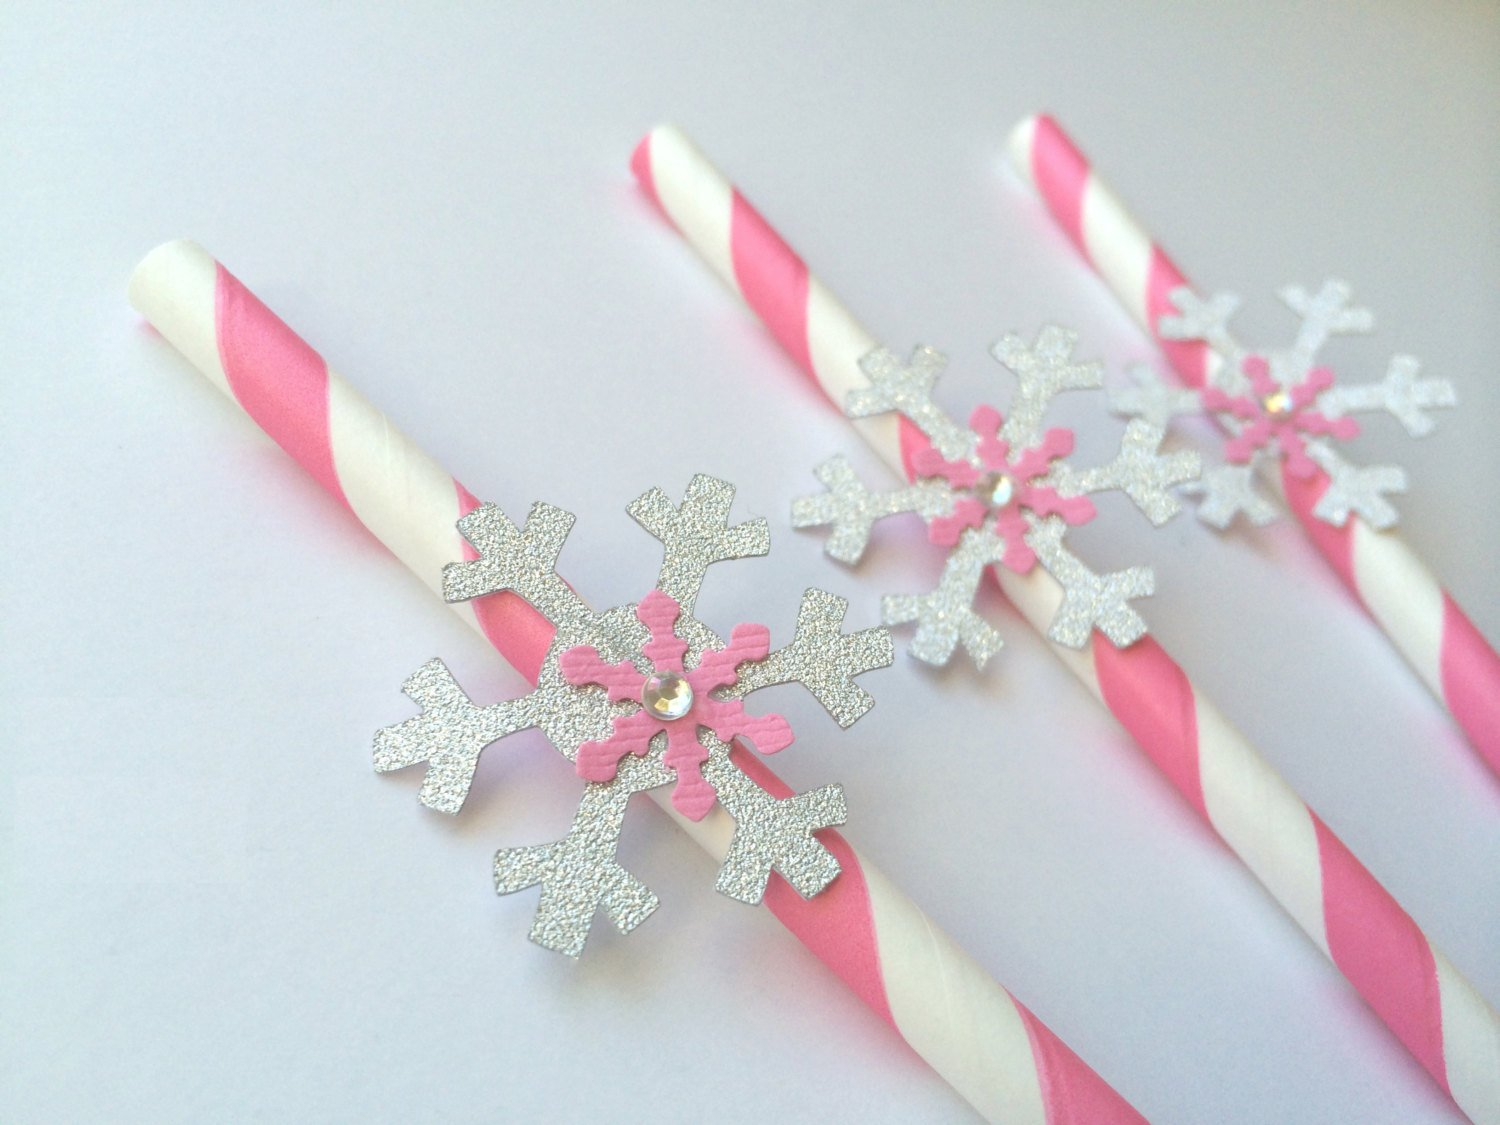 Pink & Silver Snowflake Winter Oner-derland Straws Decorations